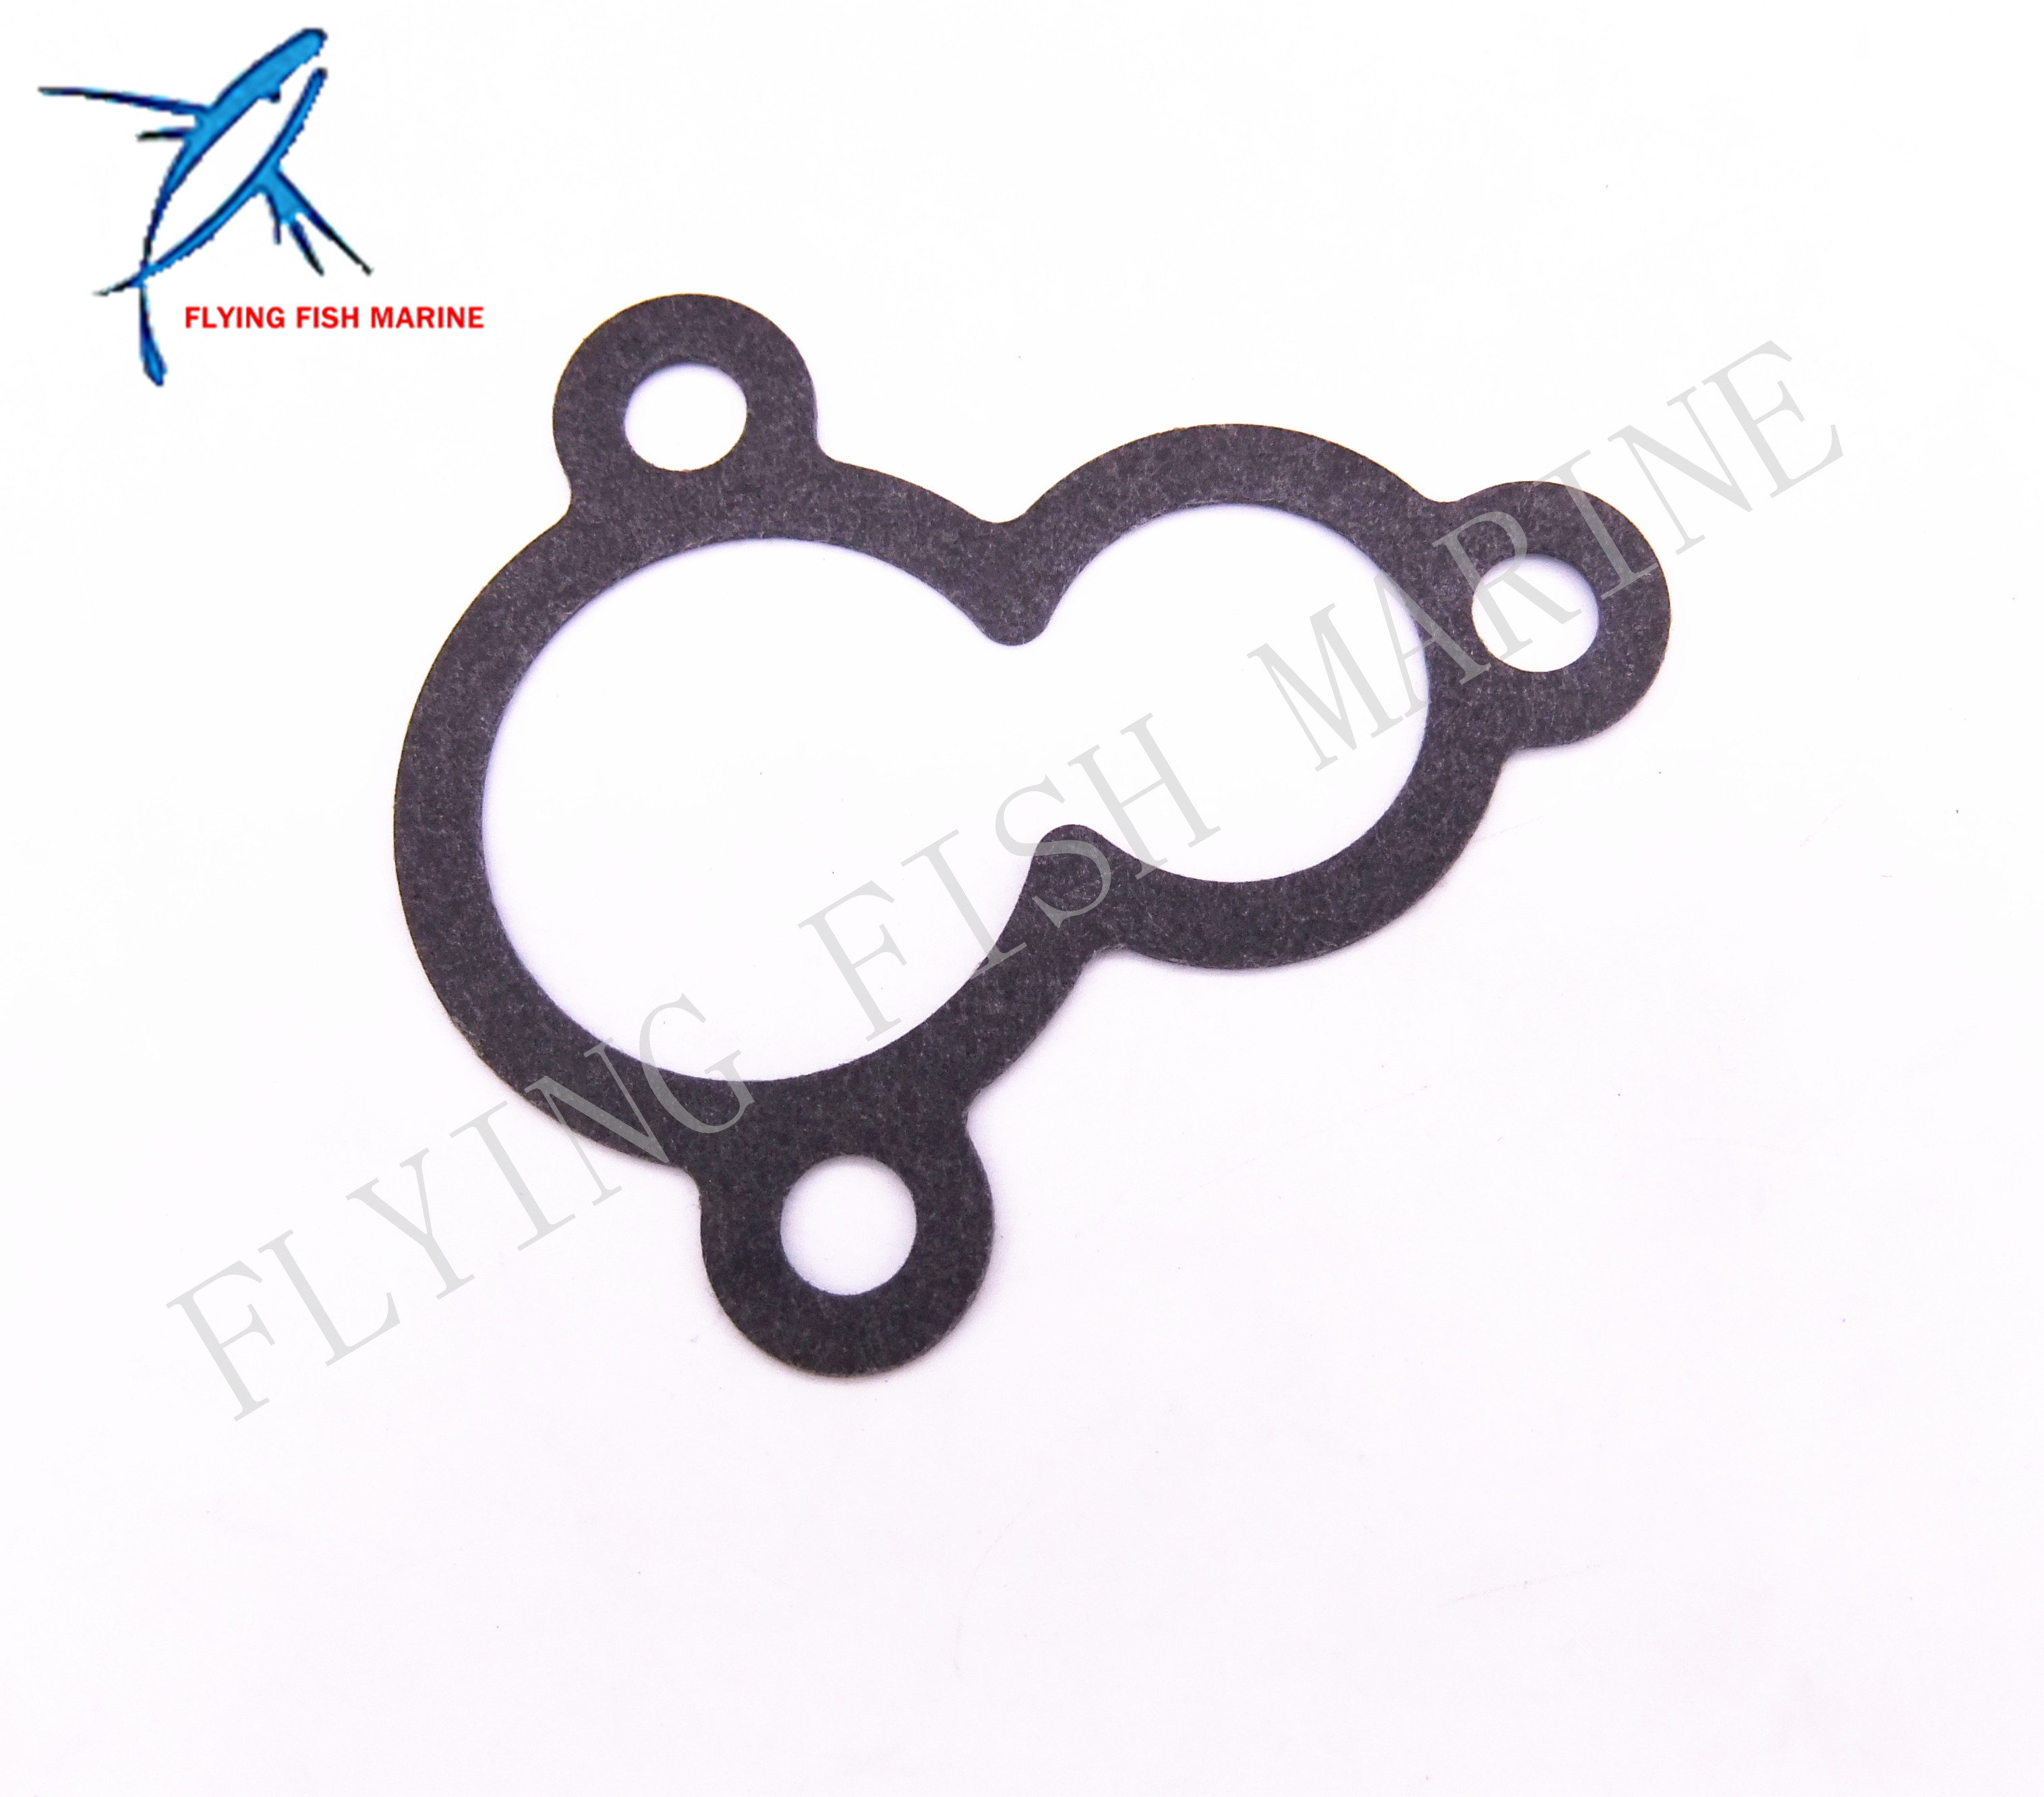 Outboard Engine 68D-E2414-A0 Thermostat Cover Gasket for Yamaha 4-Stroke F2.5 F4 F6 Boat Motor Free Shipping